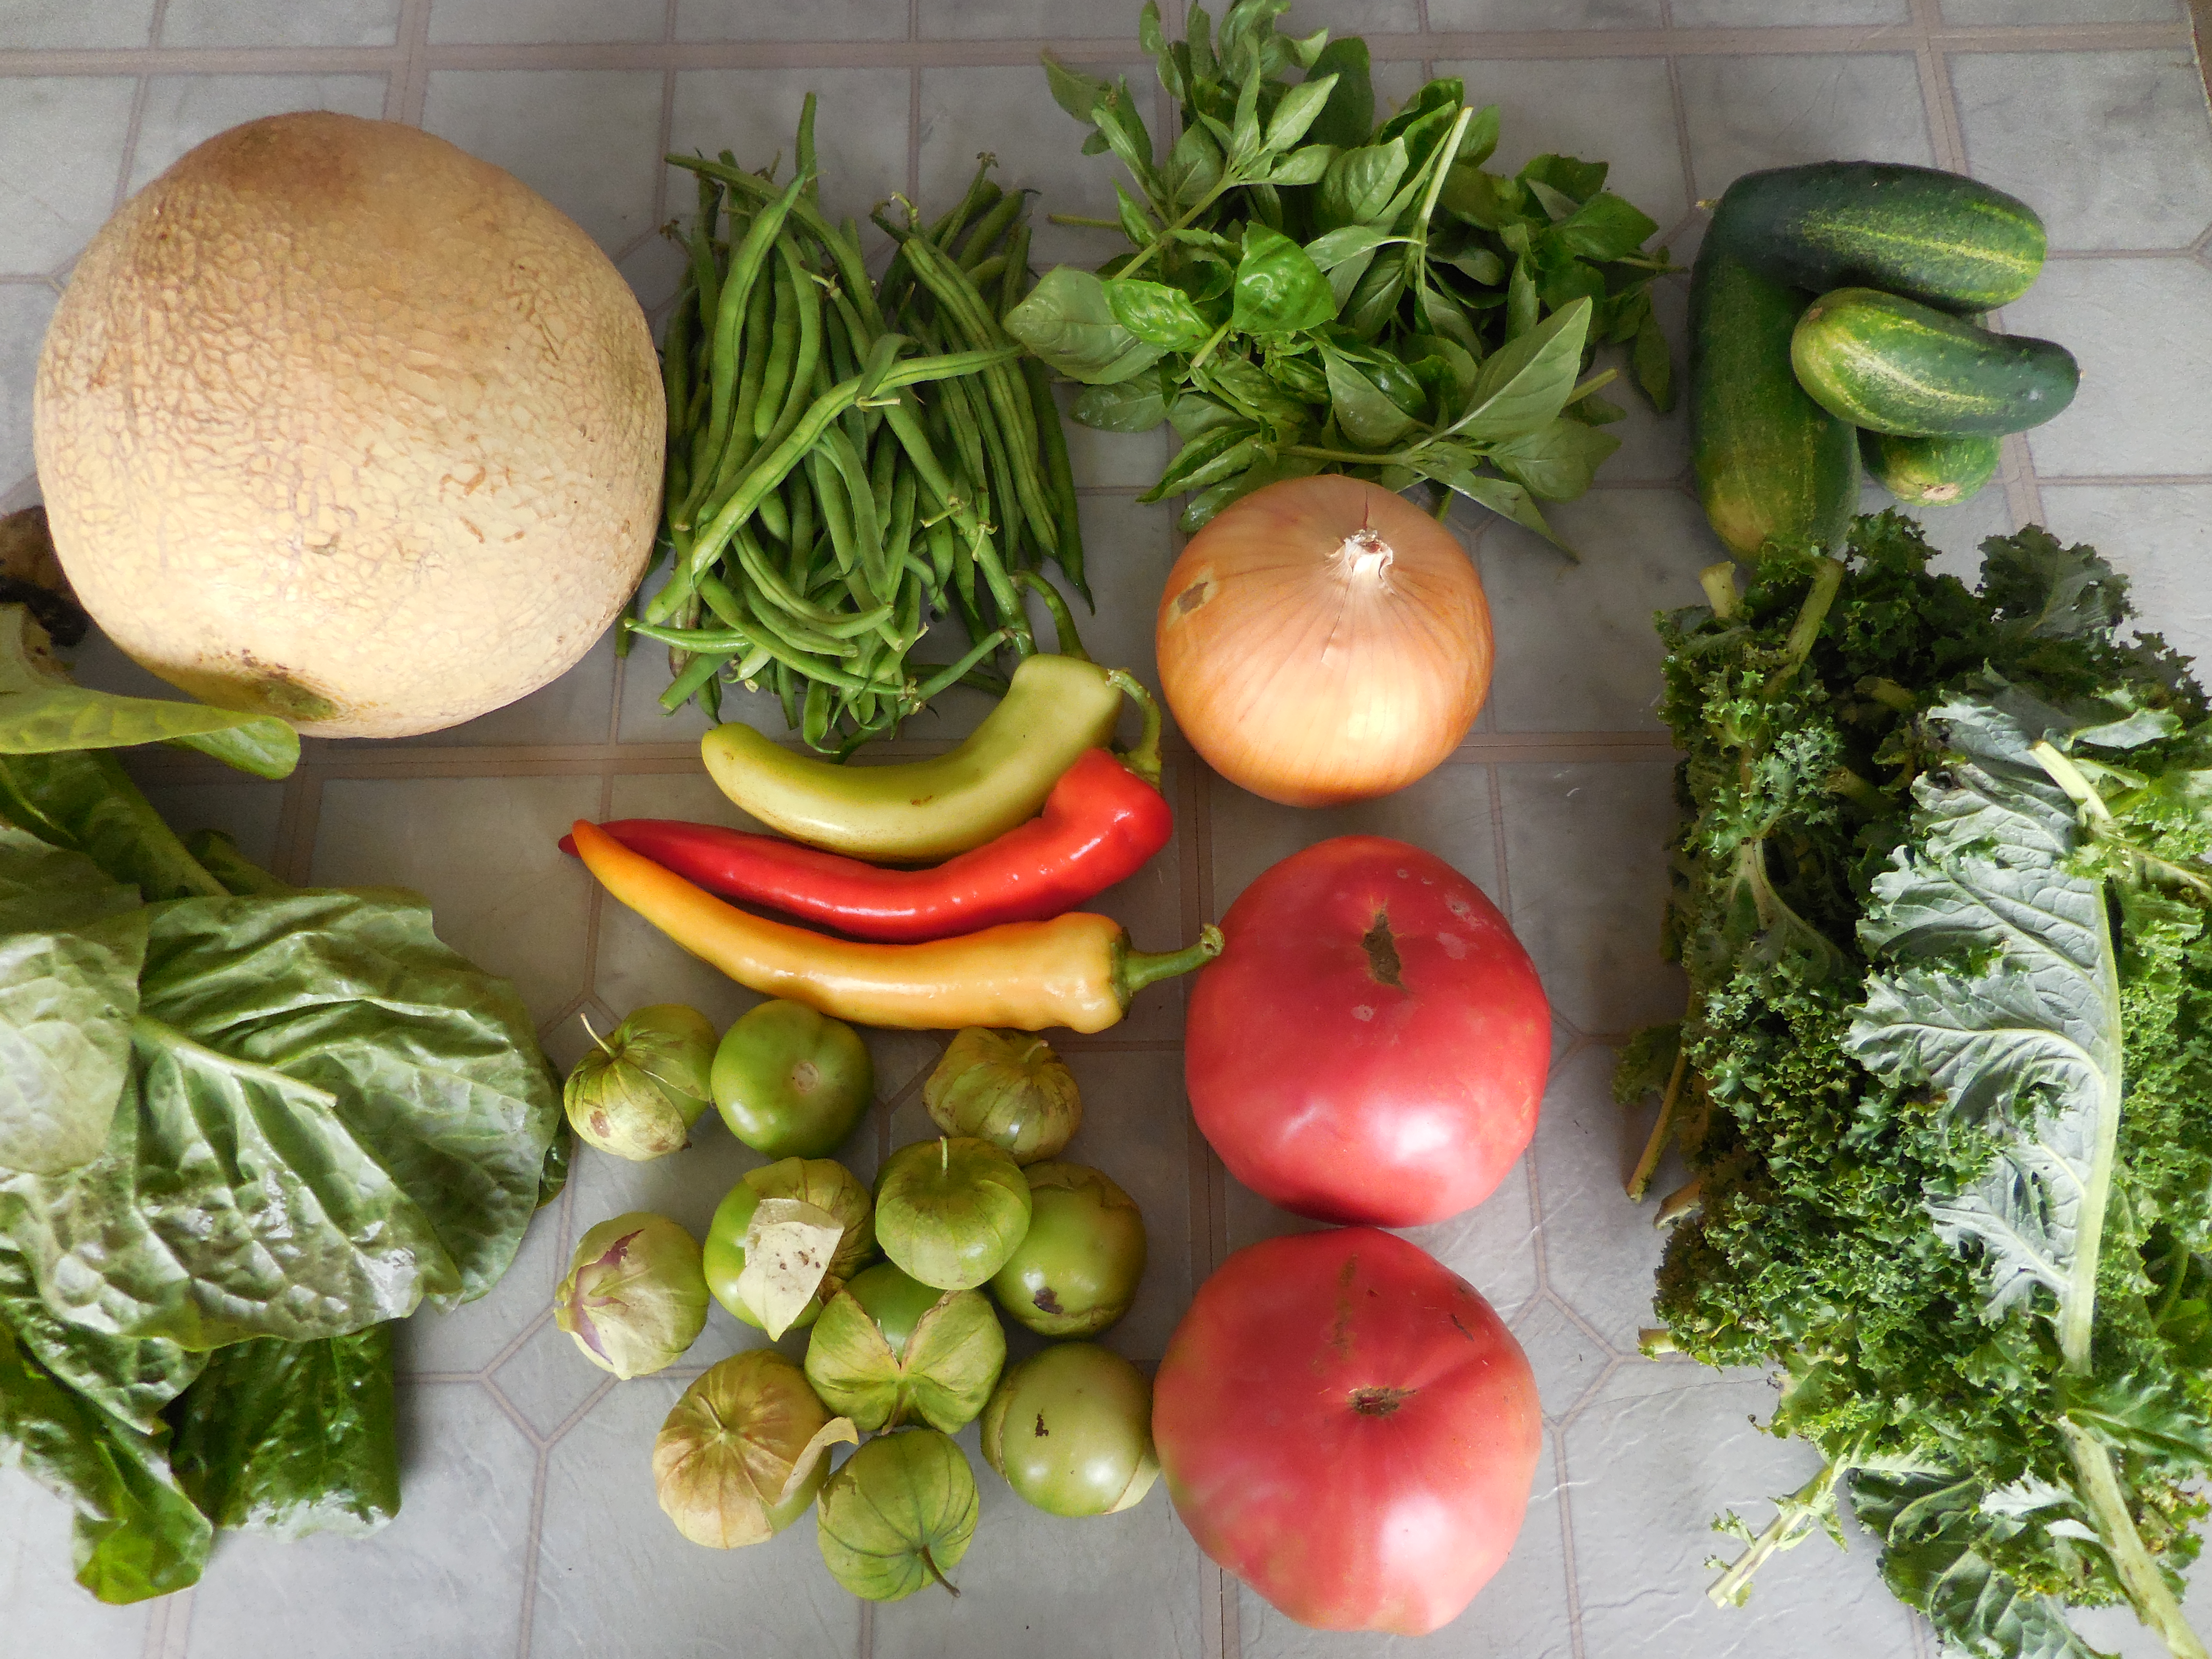 NEW! Build your own CSA Farm Share!